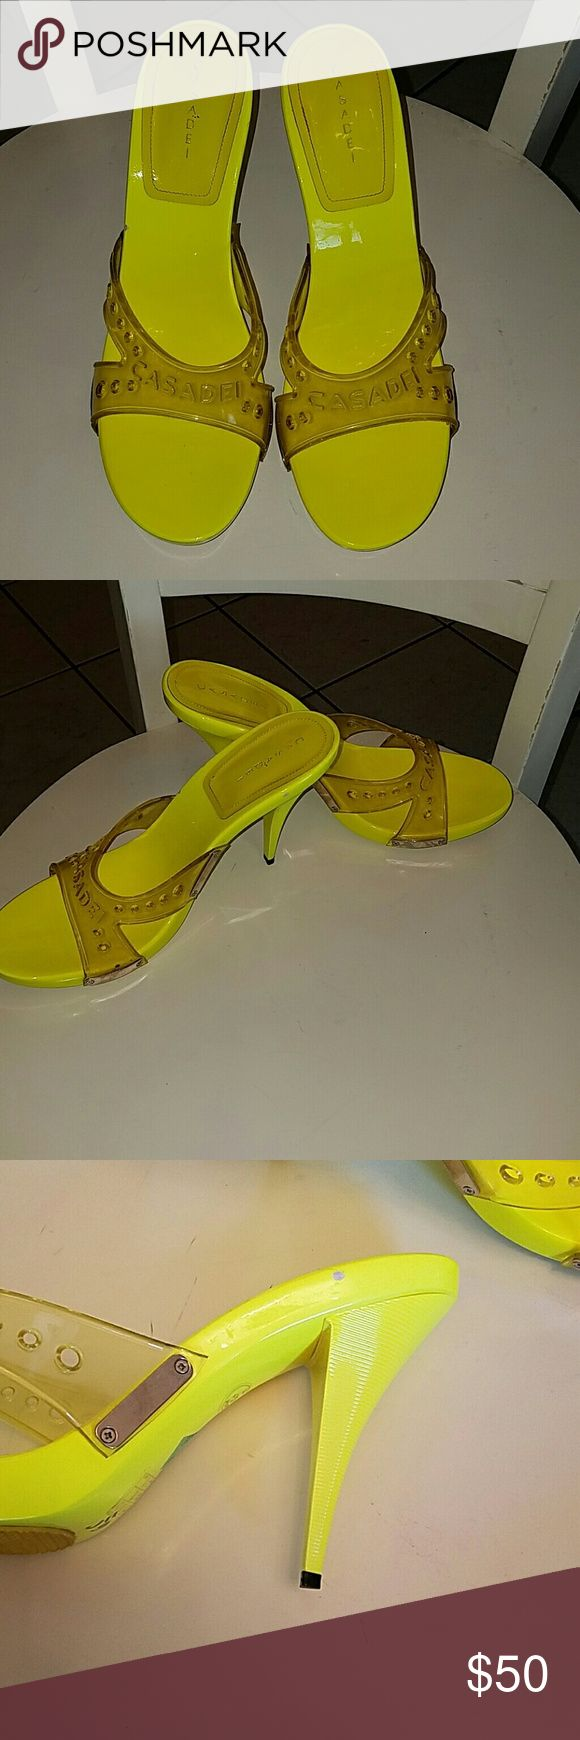 Casadei neon yellow pumps One small nick on inside of heel.  Fun and sexy shoe! No other damage Casadei Shoes Heels